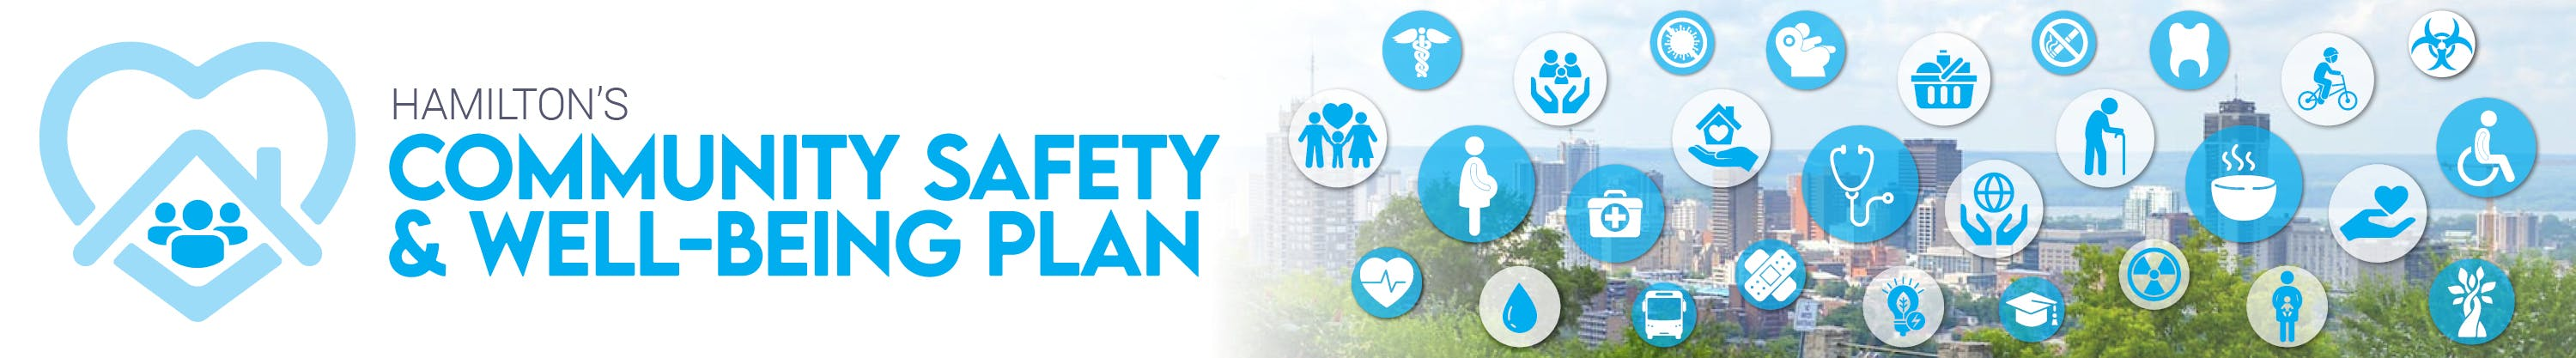 Hamilton's Community Safety & Well-Being Plan